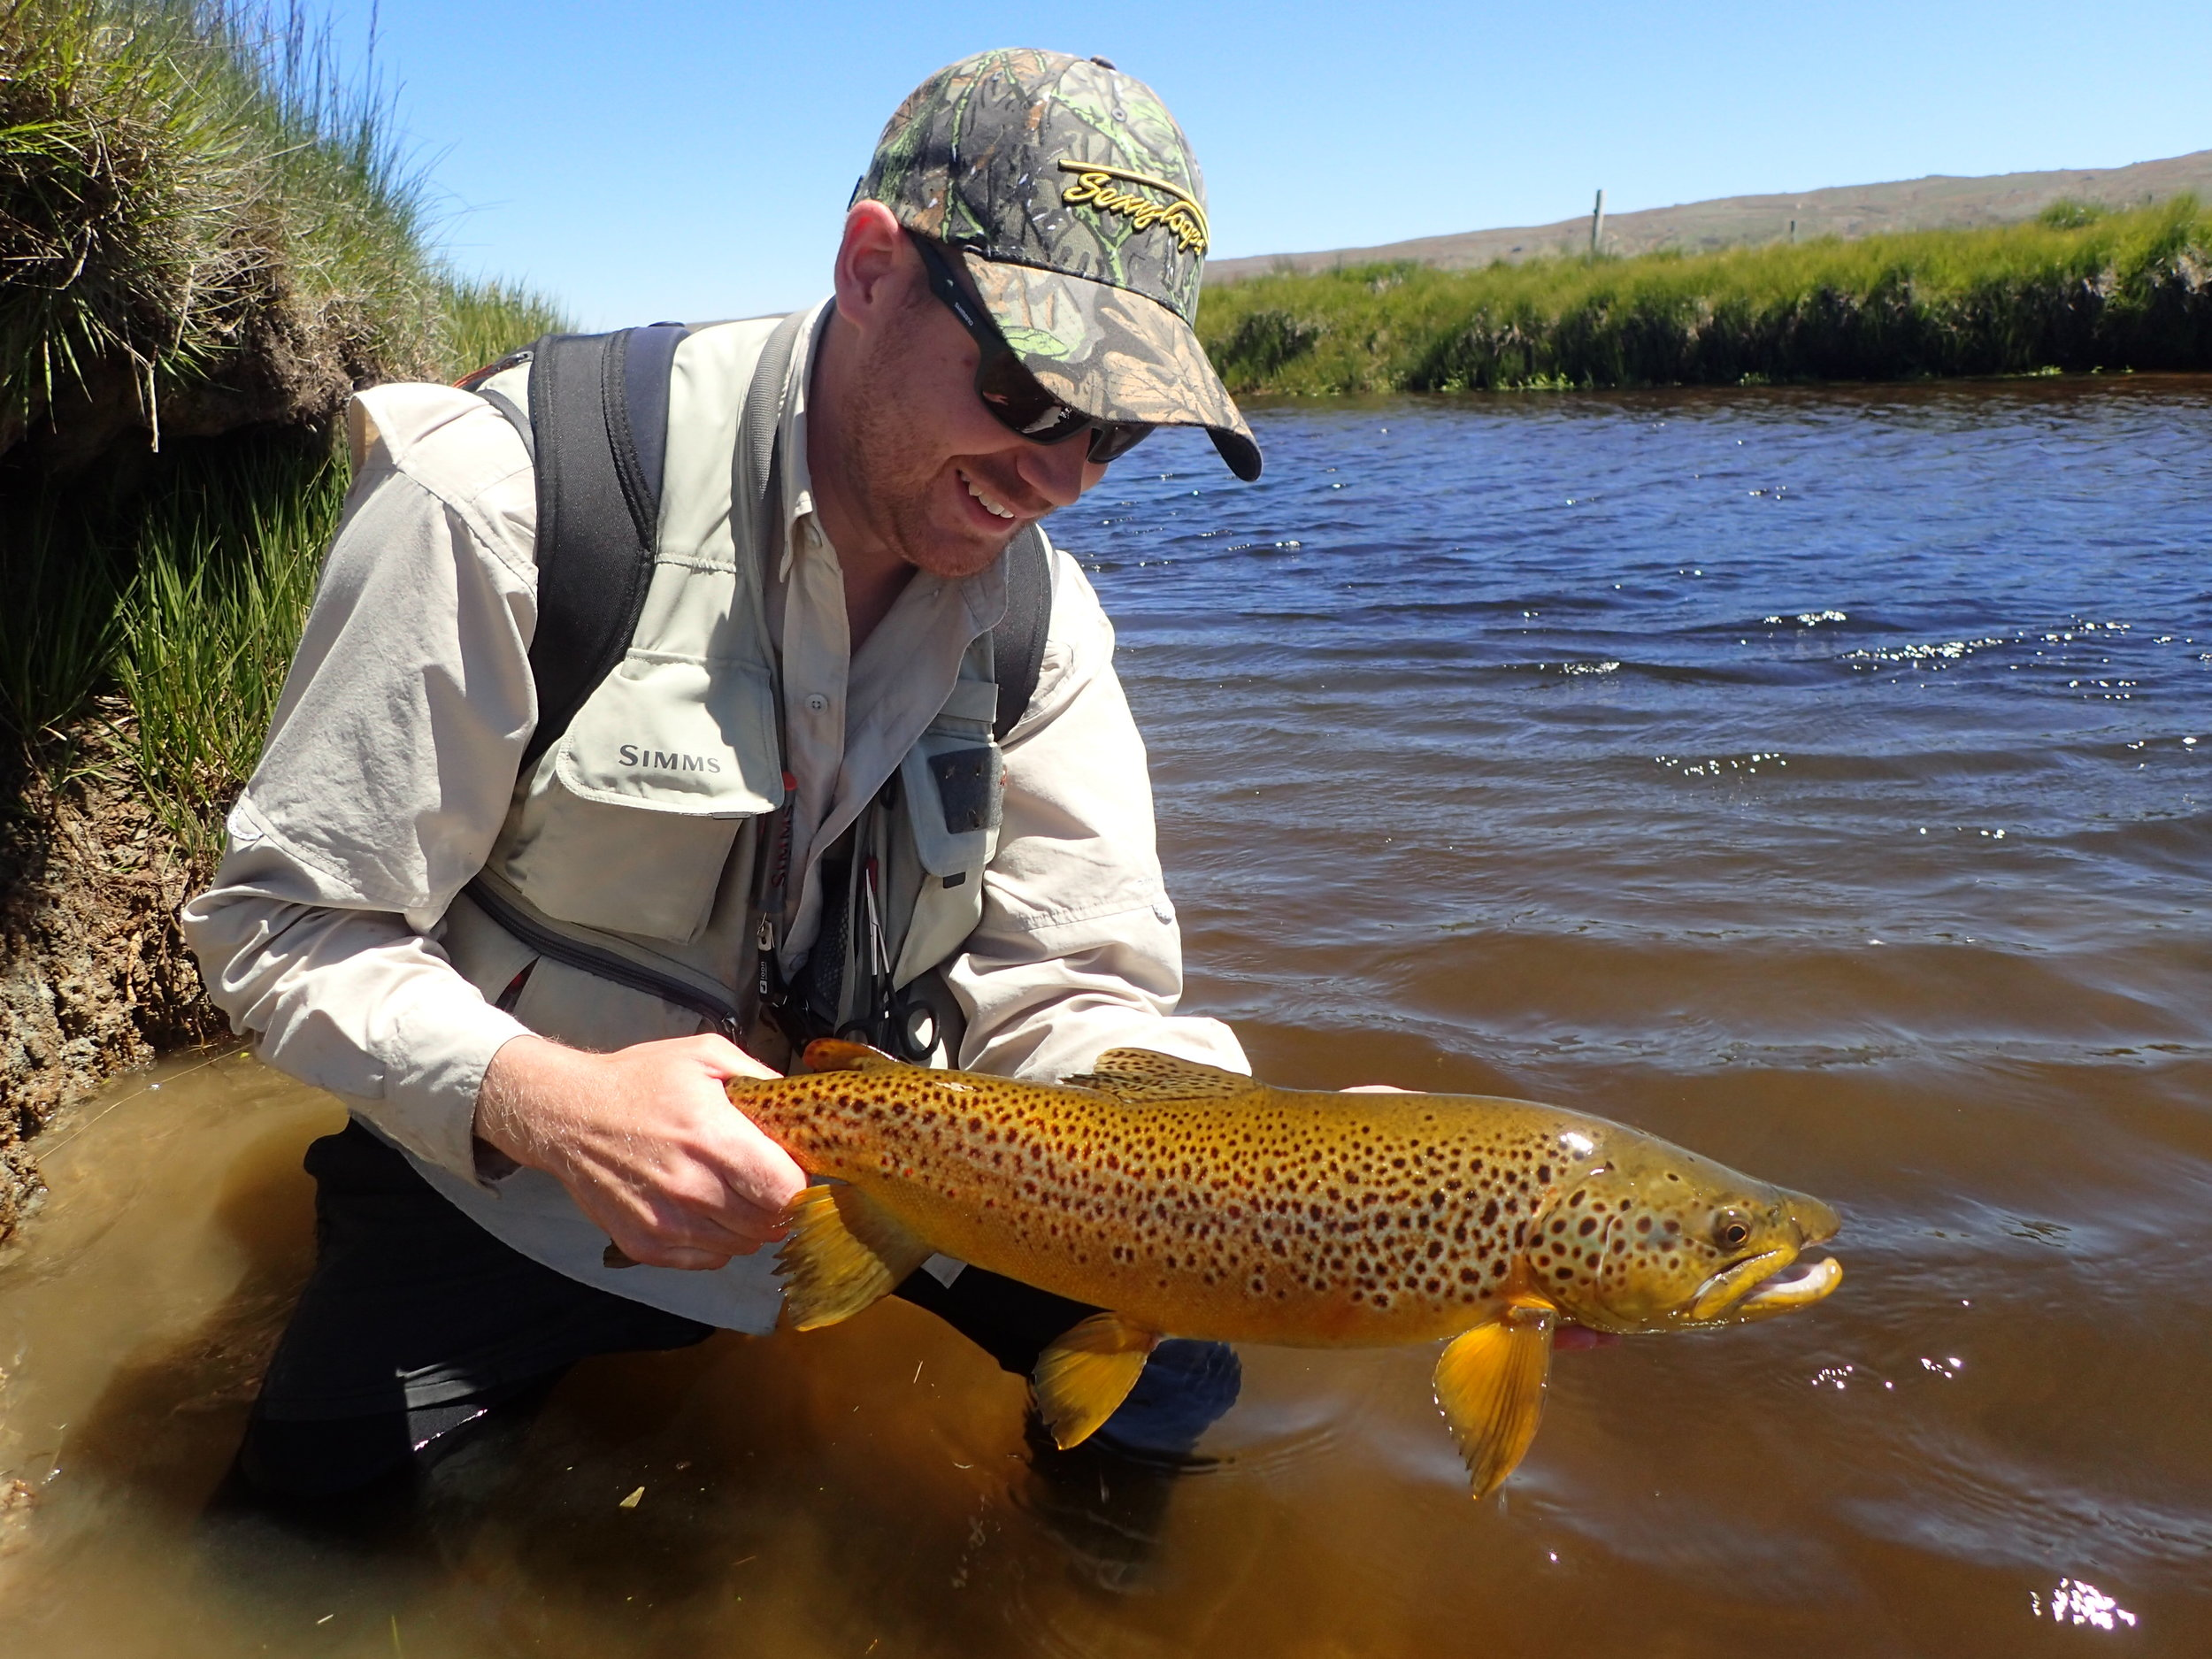 Dry Fly muncher! Again, great colours on this fish